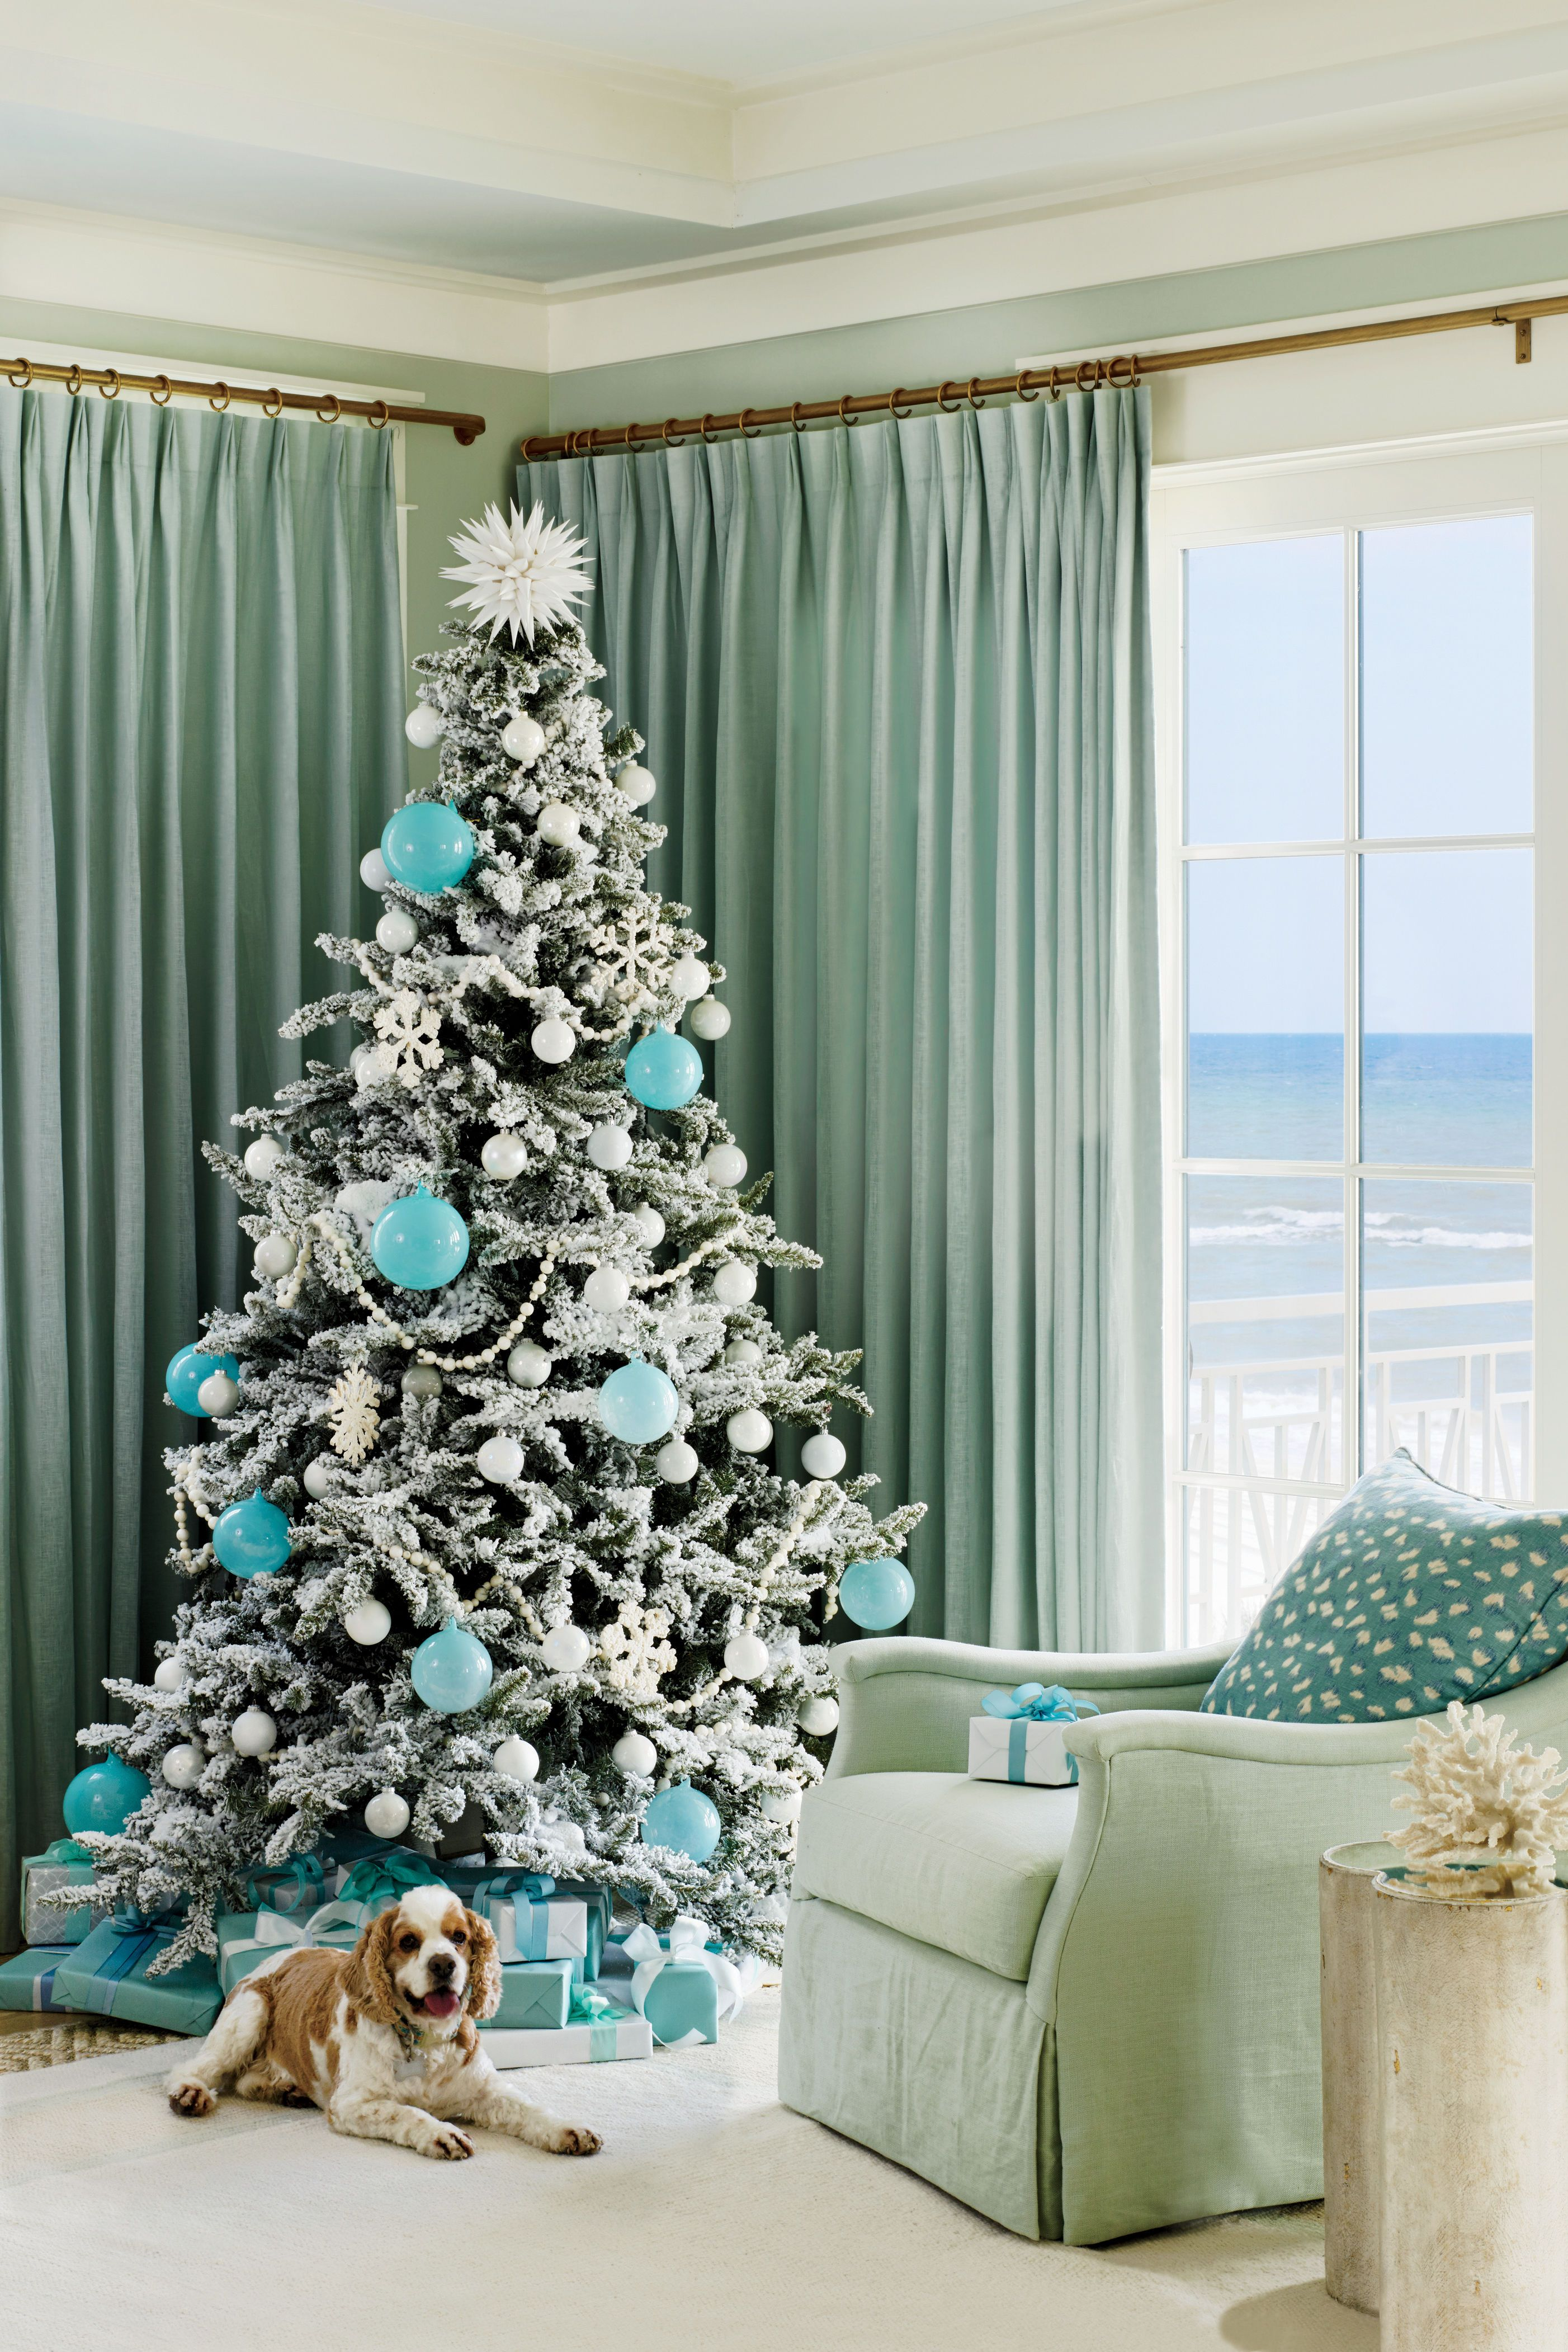 beach house christmas tree with turquoise ornaments lowcountry rh pinterest com